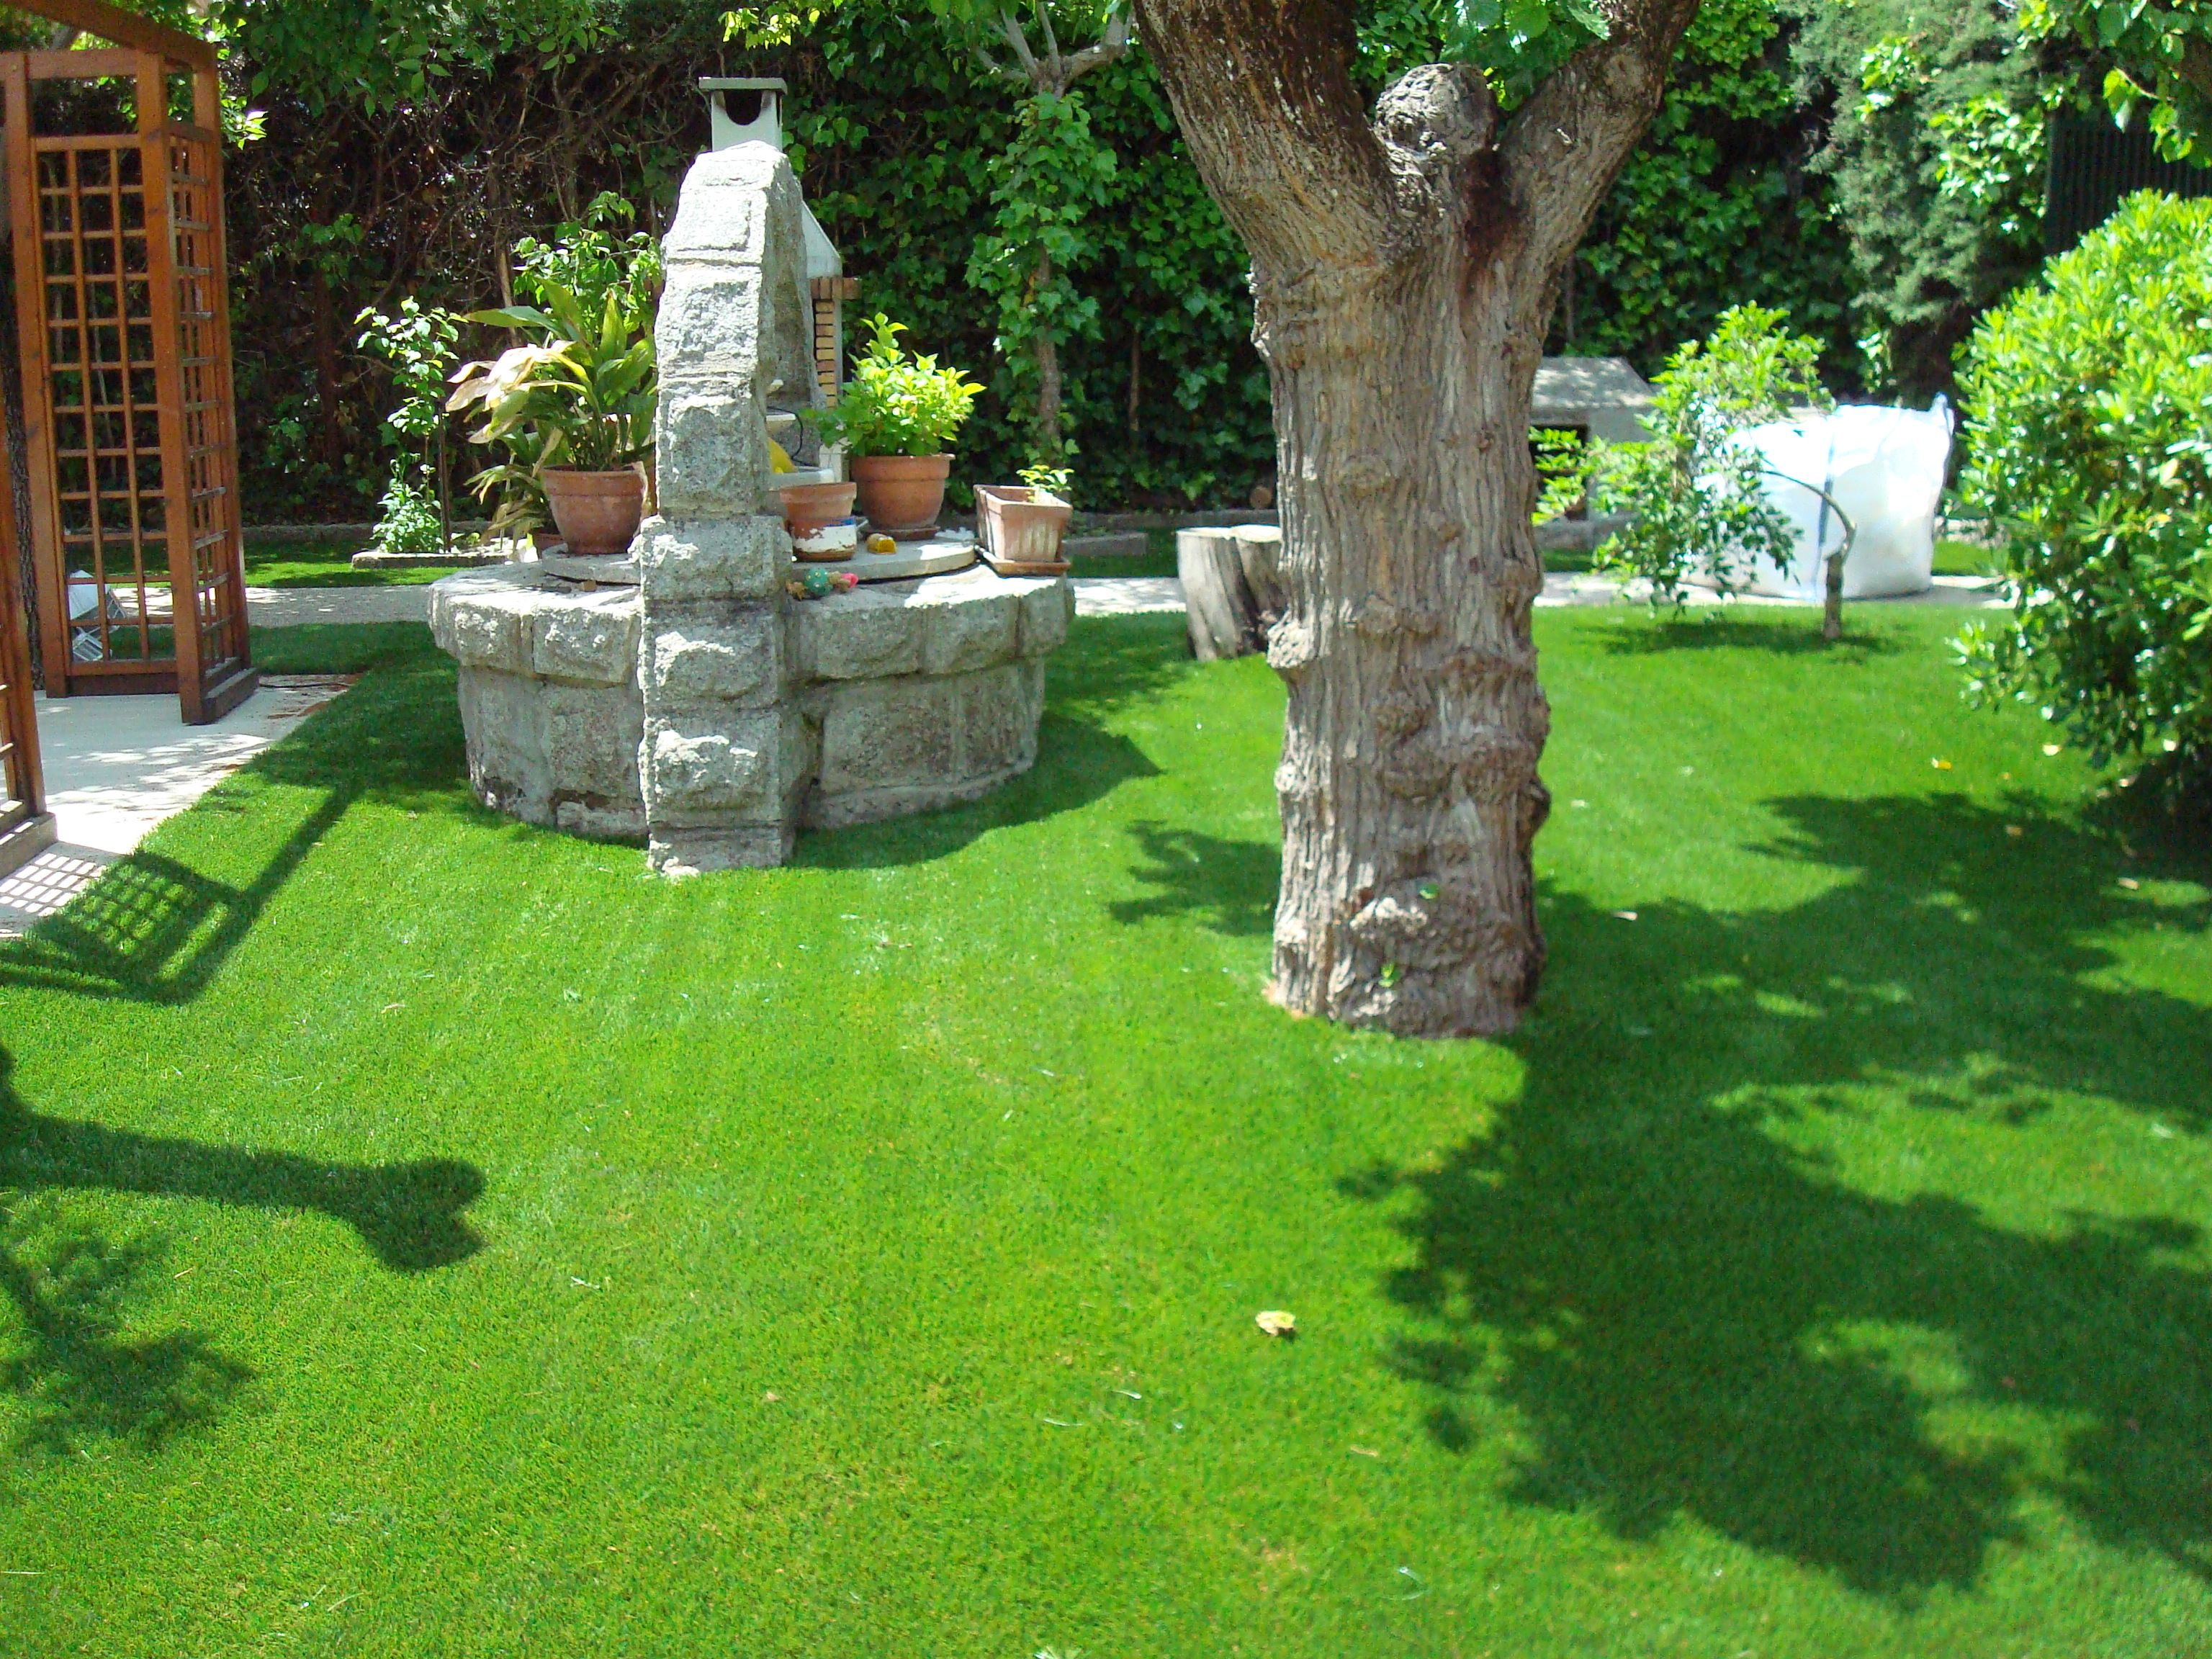 Jardin con cesped artificial bermuda 50mm instalado en los for Jardines pequenos con cesped